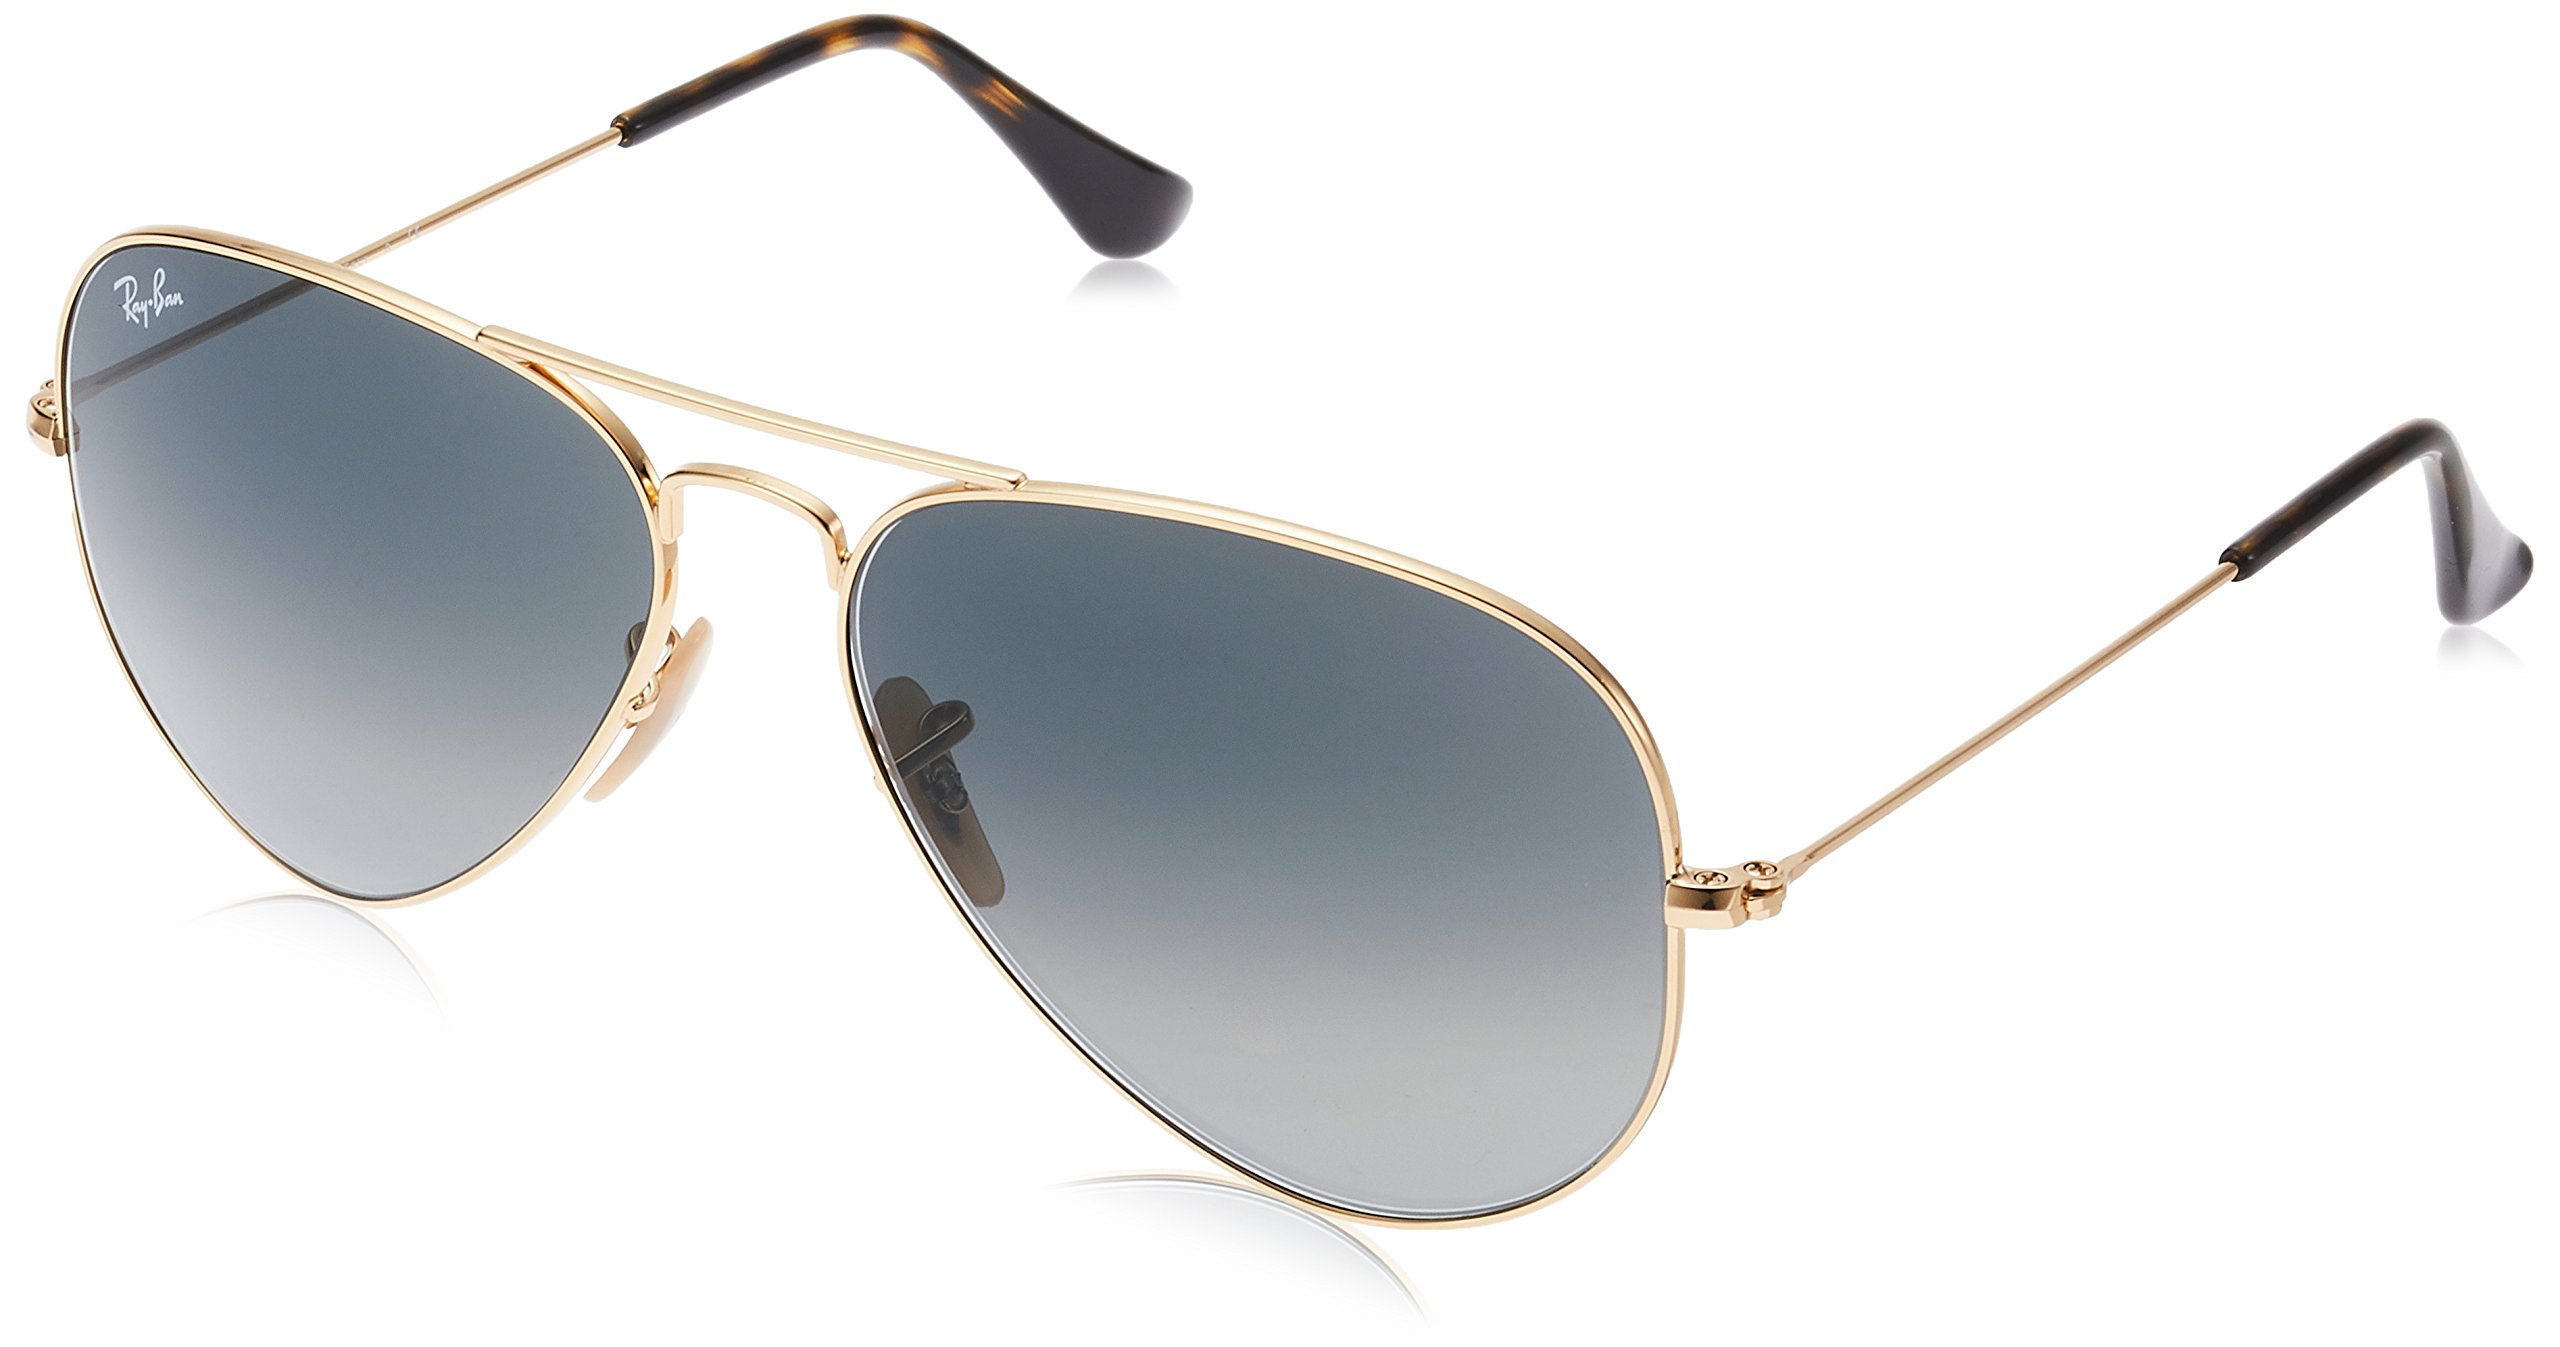 Ray-Ban 3025 Aviator Large Metal Non-Mirrored Non-Polarized Sunglasses, Gold/Light Grey Gradient Dark Grey (181/71), 58mm